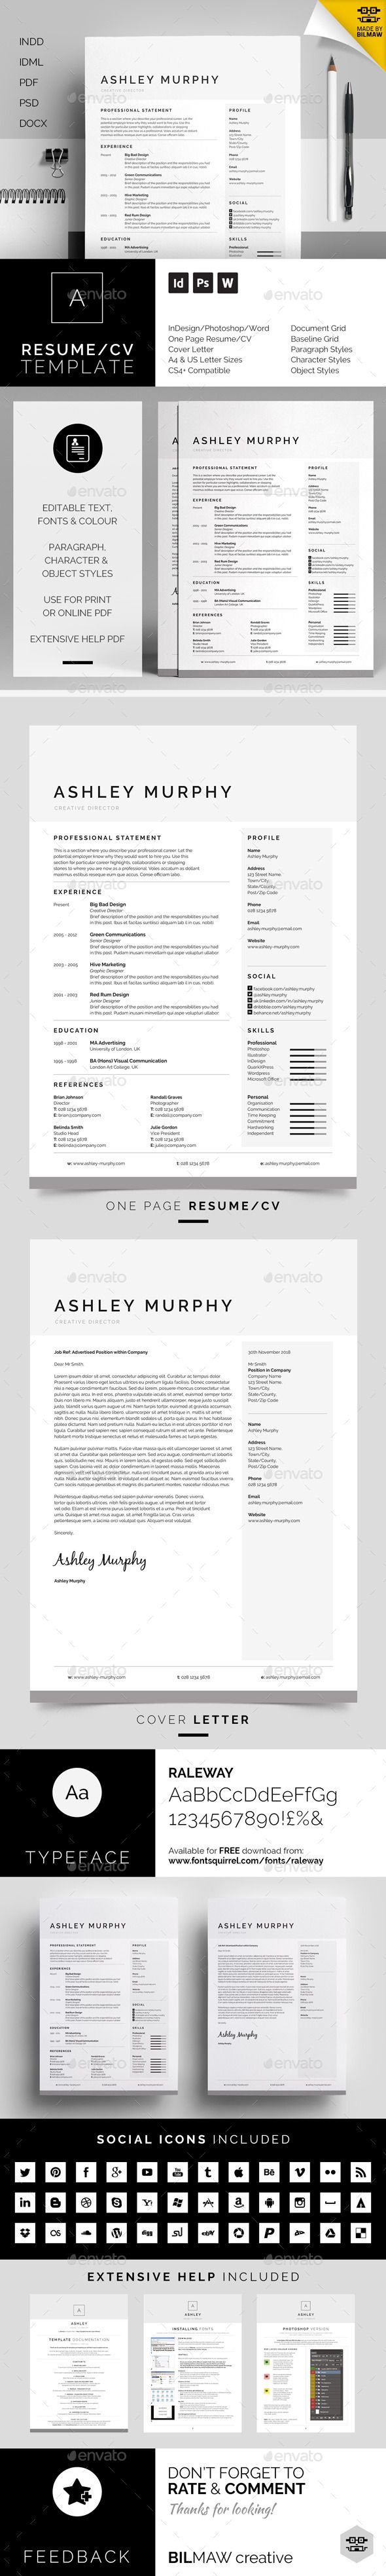 sample of resignation letter%0A Resume CV  Cover letter templates  Professional  minimalist design  easy  to edit